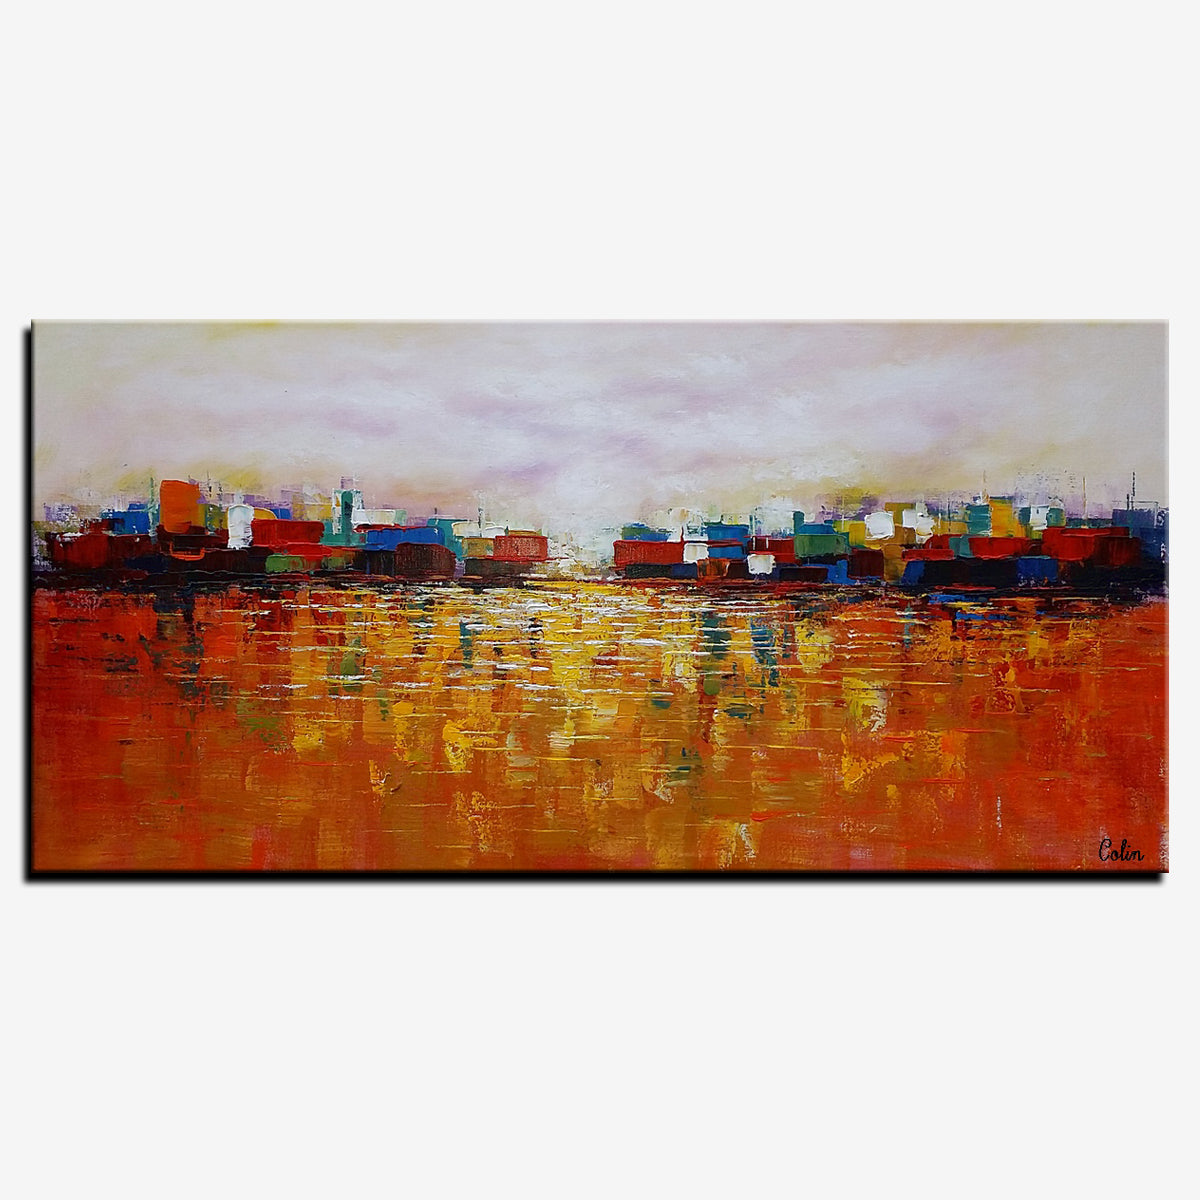 Cityscape Art, Abstract Landscape Painting, Canvas Wall Art, Original Artwork